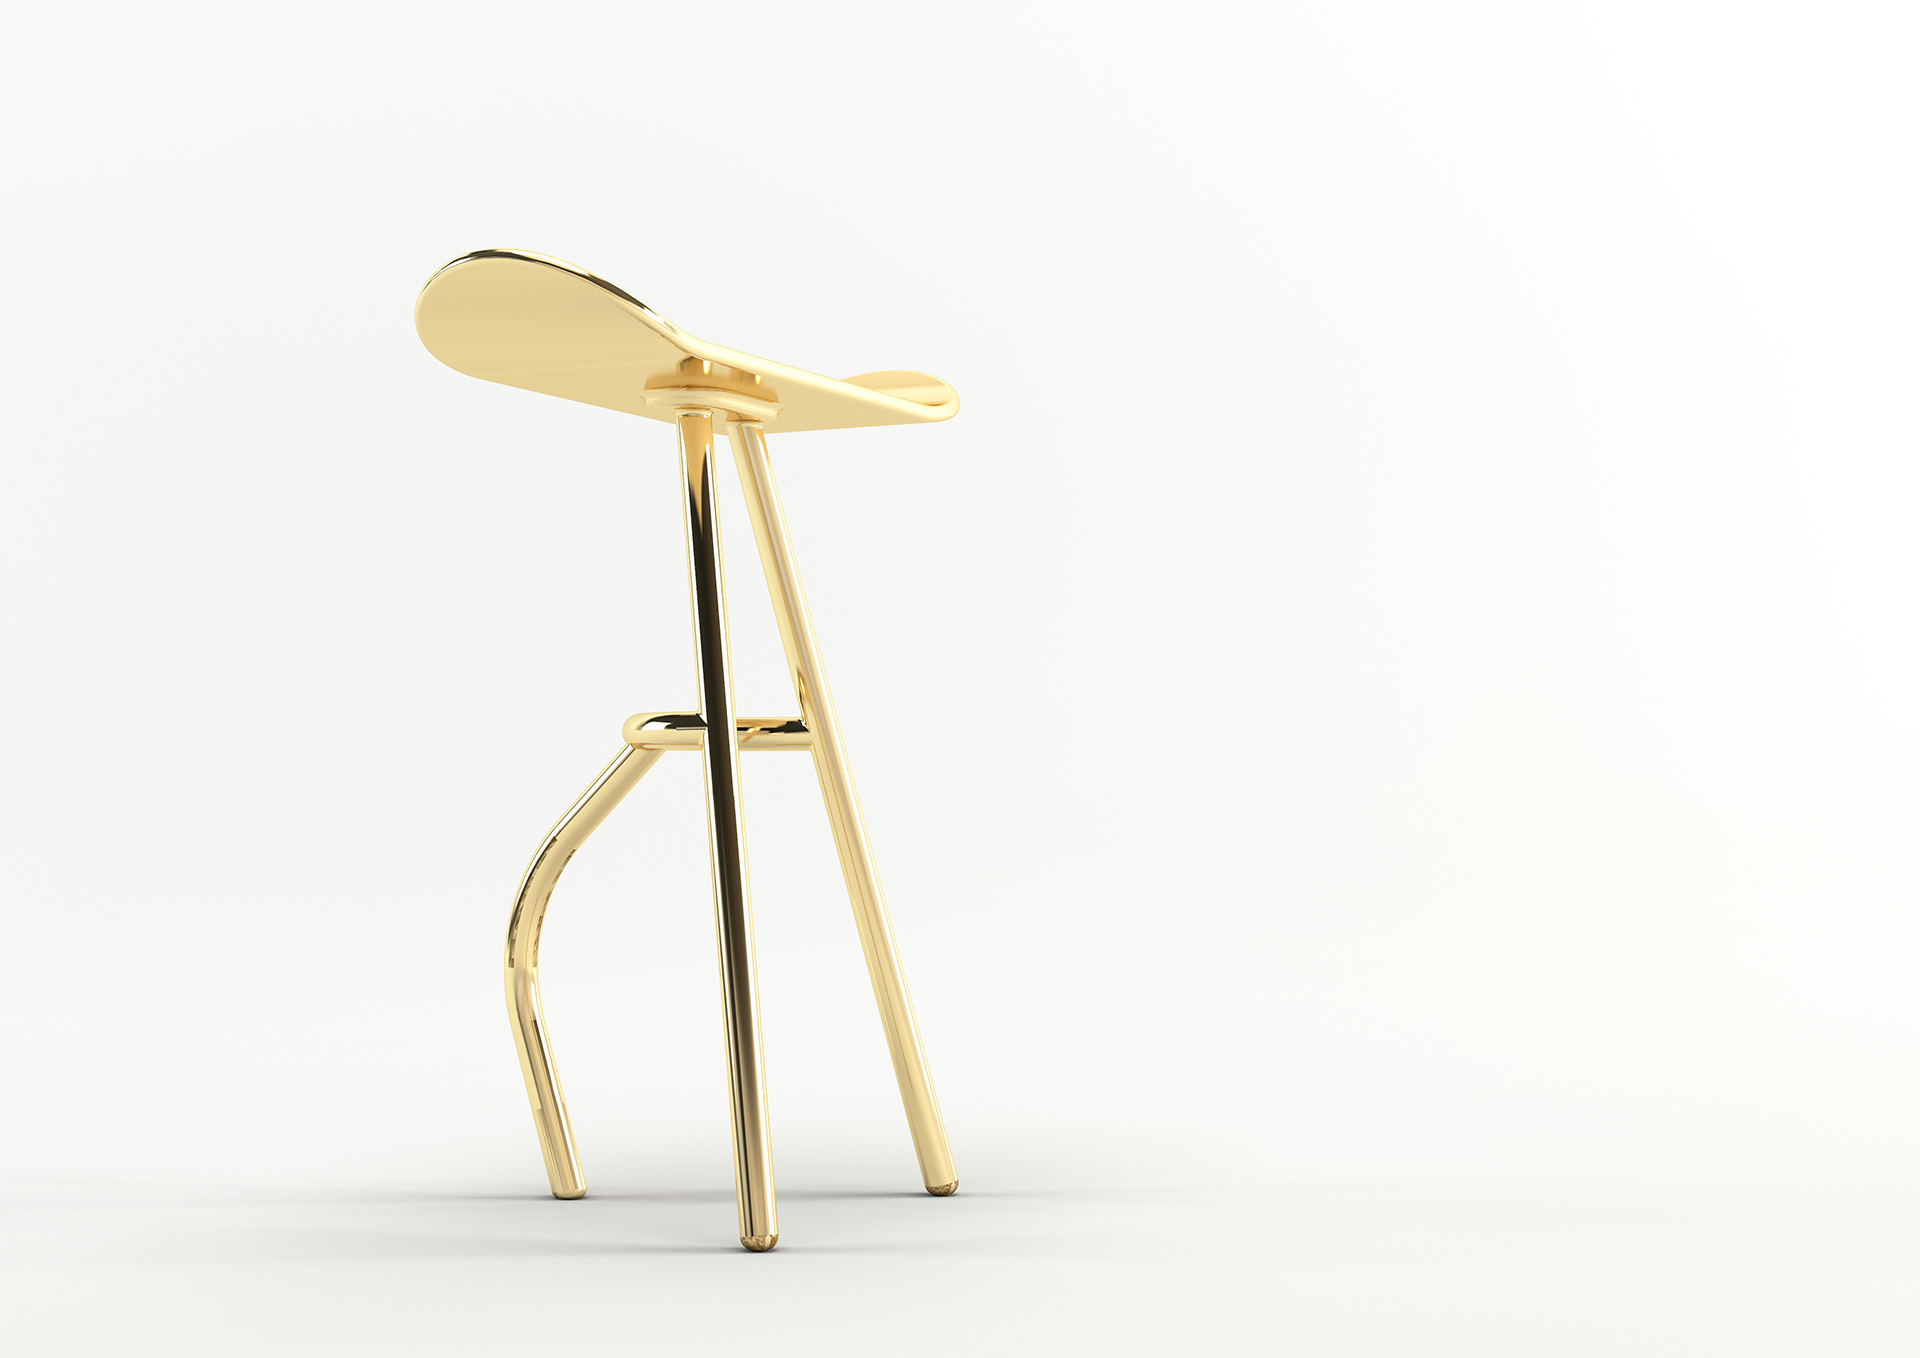 THE STOOL 1